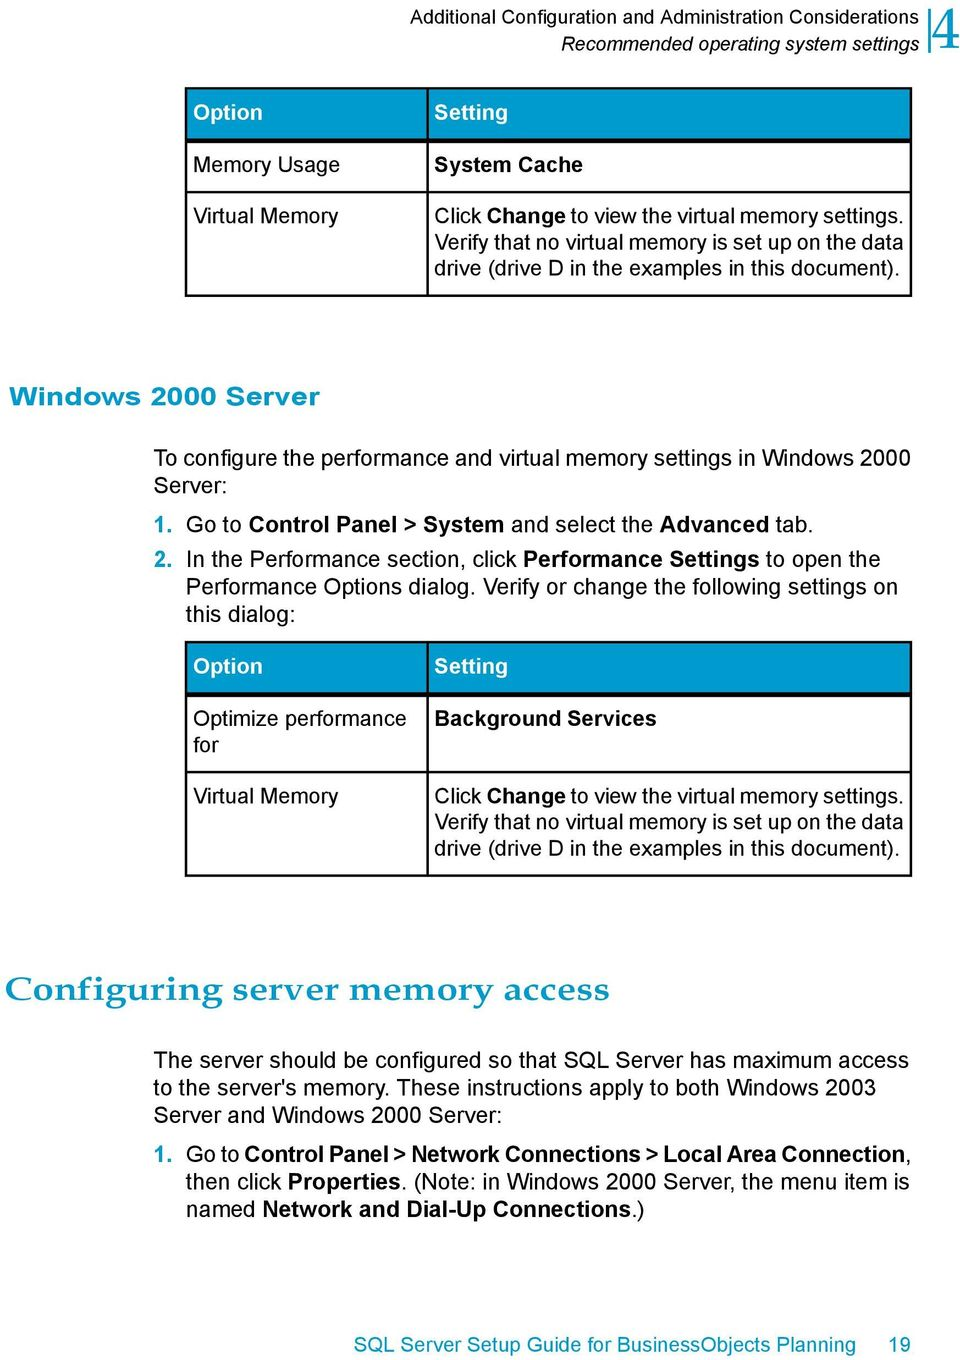 Windows 2000 Server To configure the performance and virtual memory settings in Windows 2000 Server: 1. Go to Control Panel > System and select the Advanced tab. 2. In the Performance section, click Performance Settings to open the Performance Options dialog.